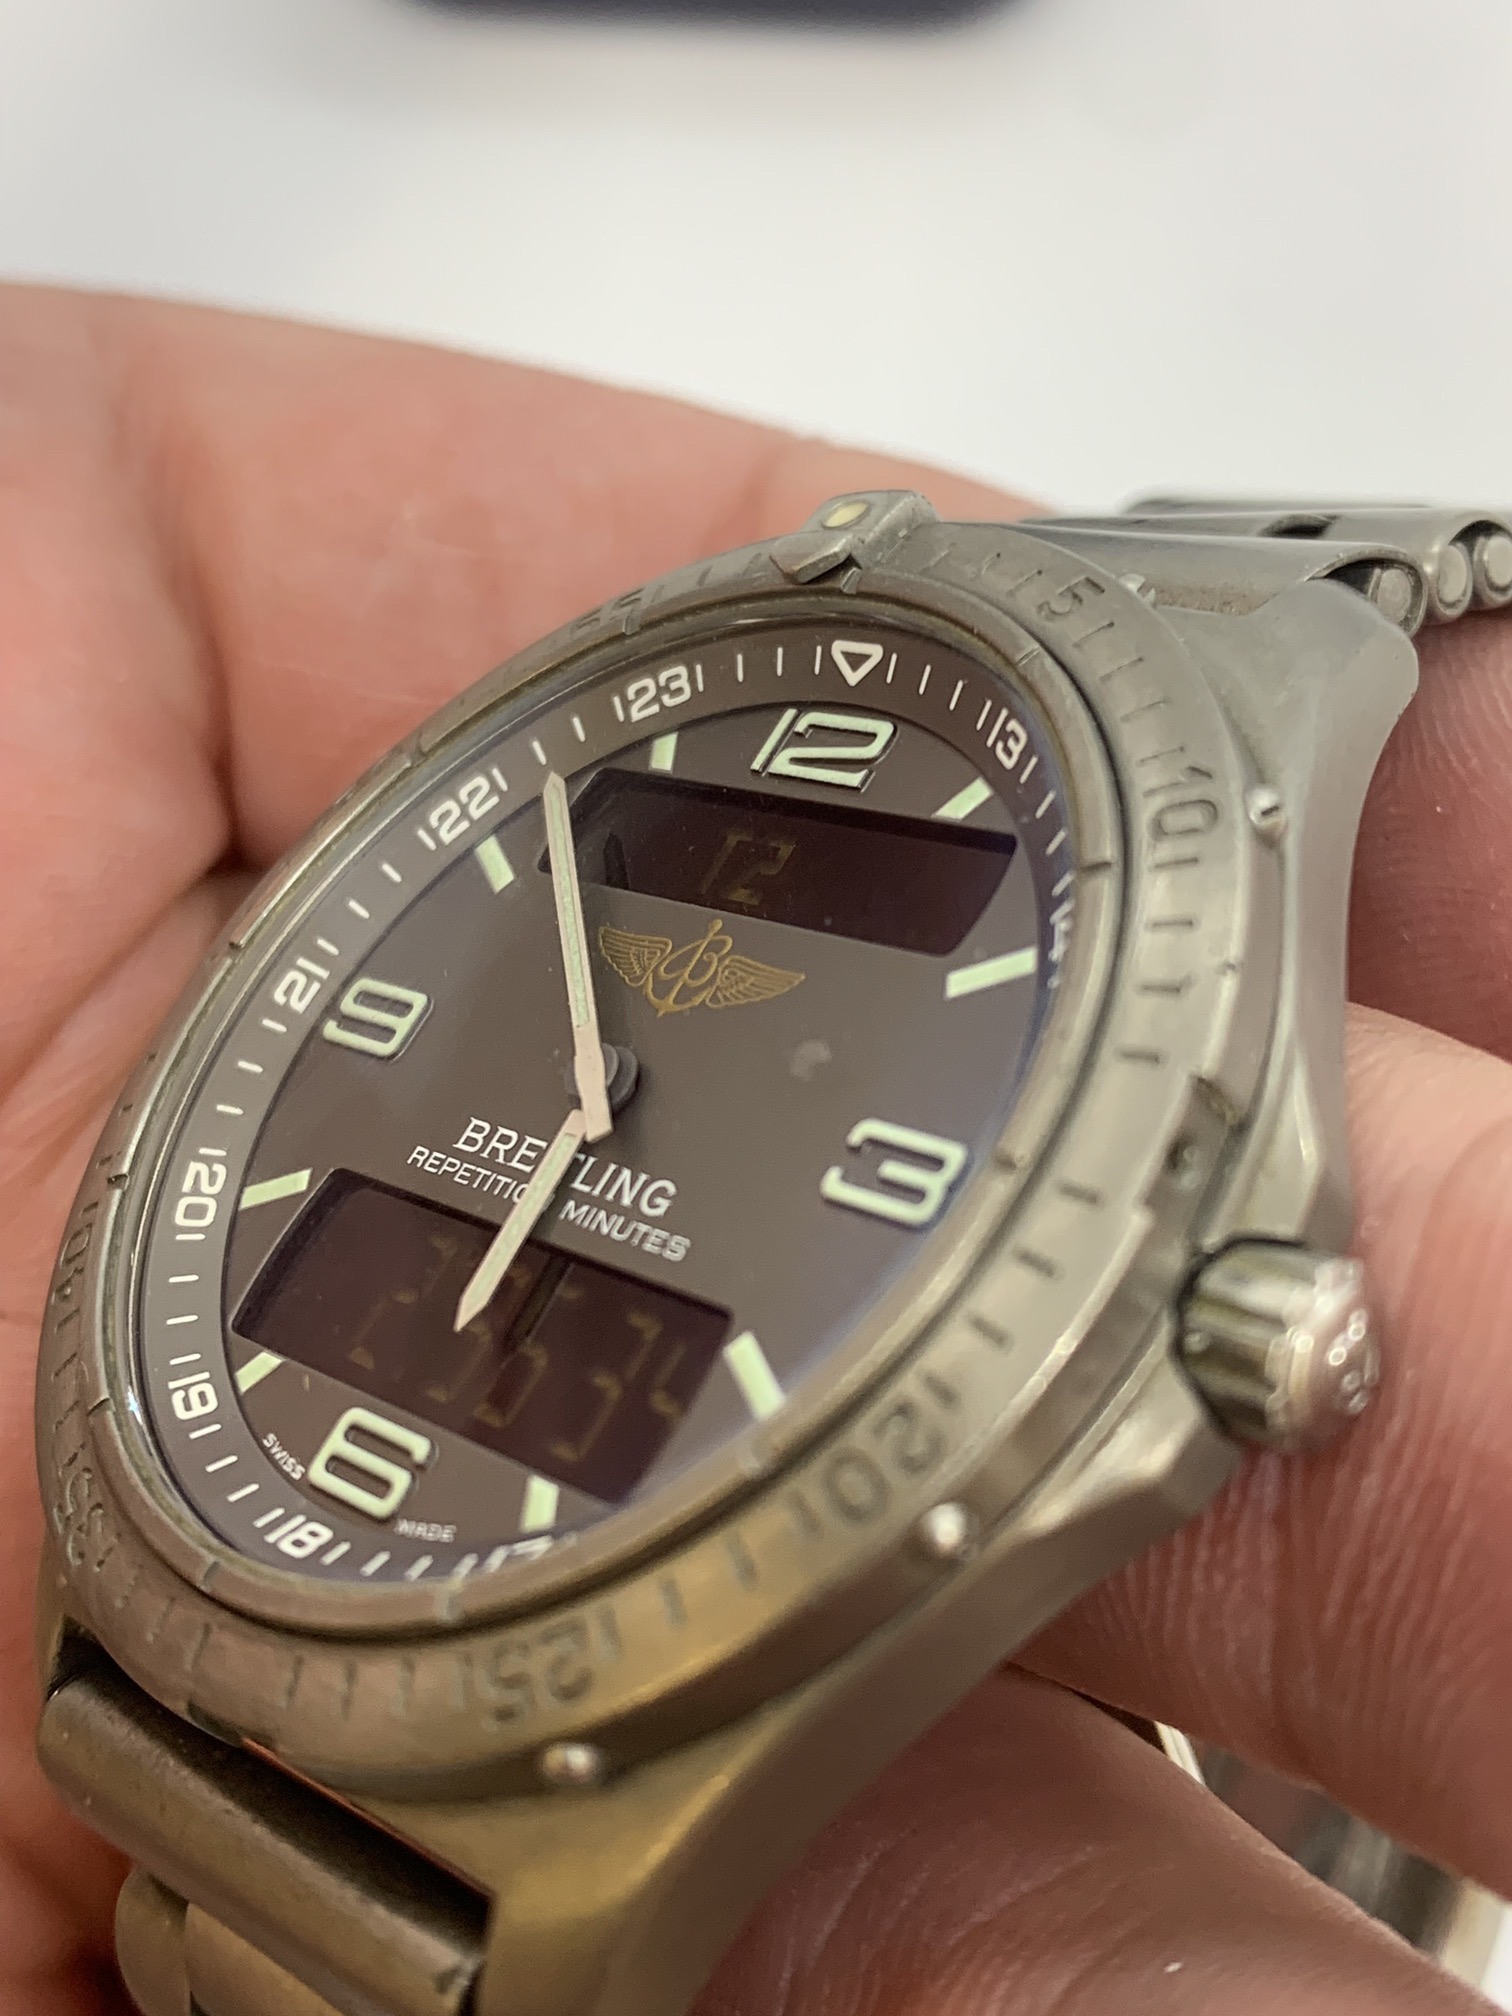 BREITLING TITANIUM WATCH A/F - Image 14 of 15